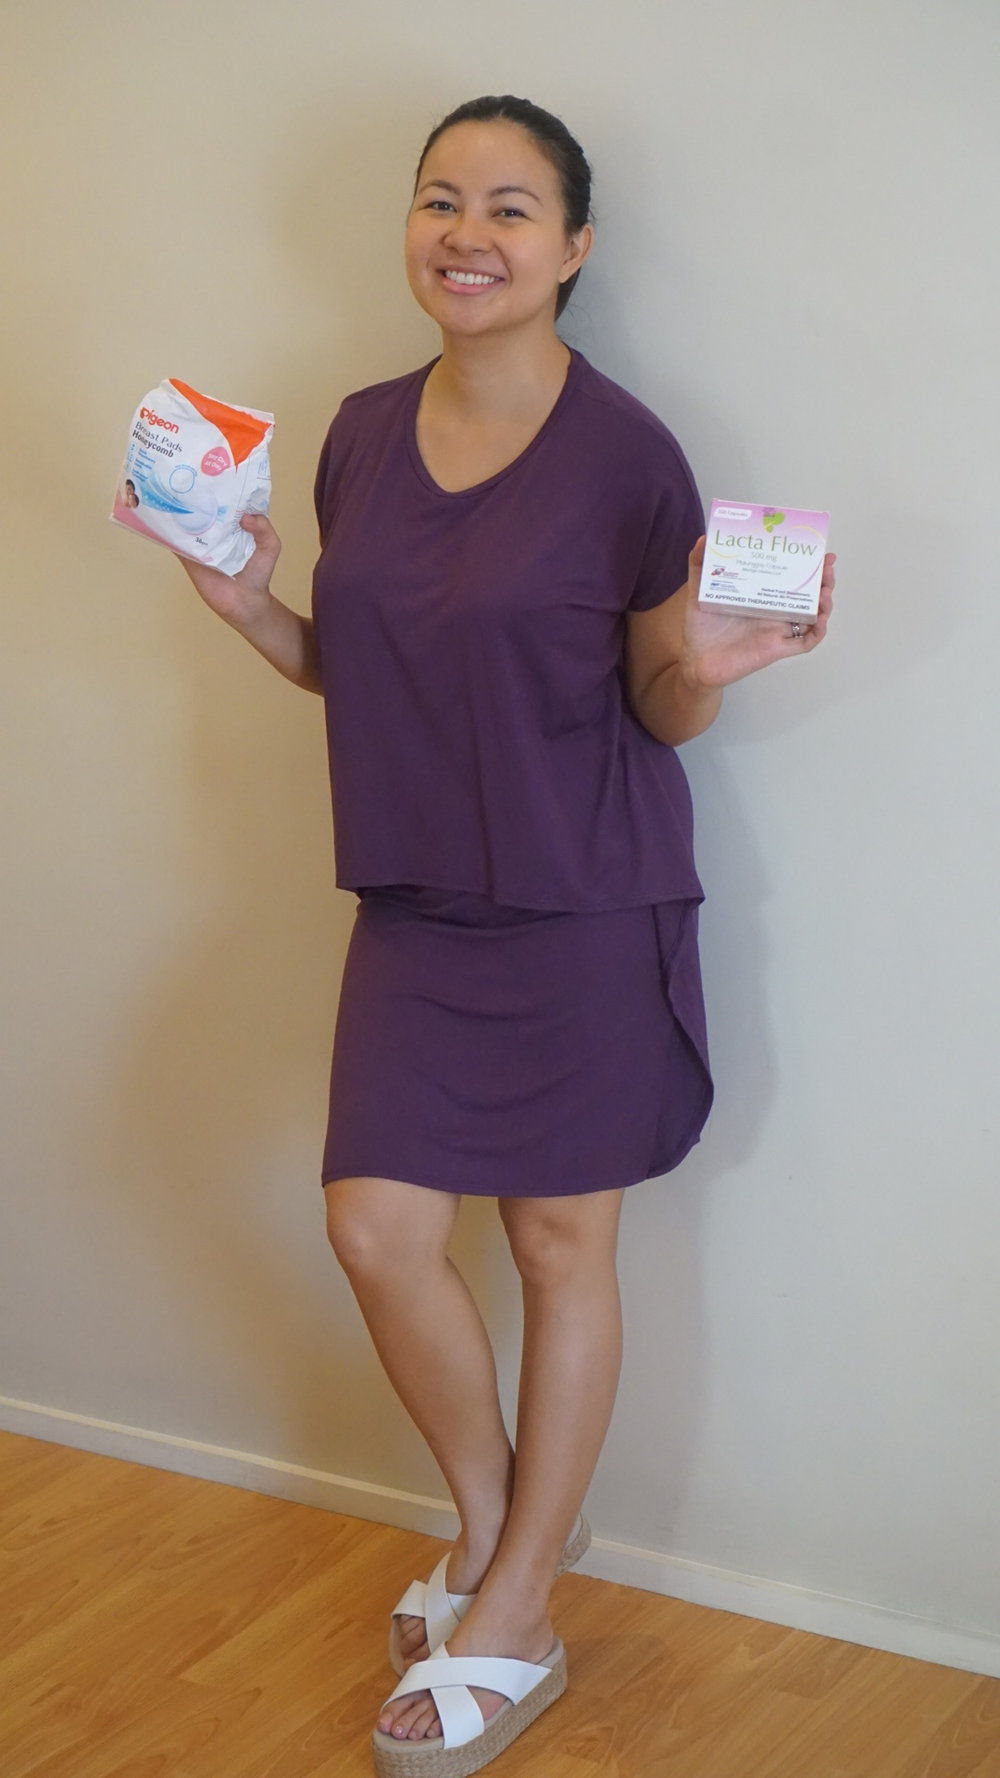 I don't remember exactly how many weeks postpartum I was in this picture. All I know is that I wanted to write an entry focusing on nursing; that's why I was holding breast pads and malunggay supplements haha! This nursing dress is from @elin_ph and my flats from @herabeatrice_onlineshop . Comfort is the priority!